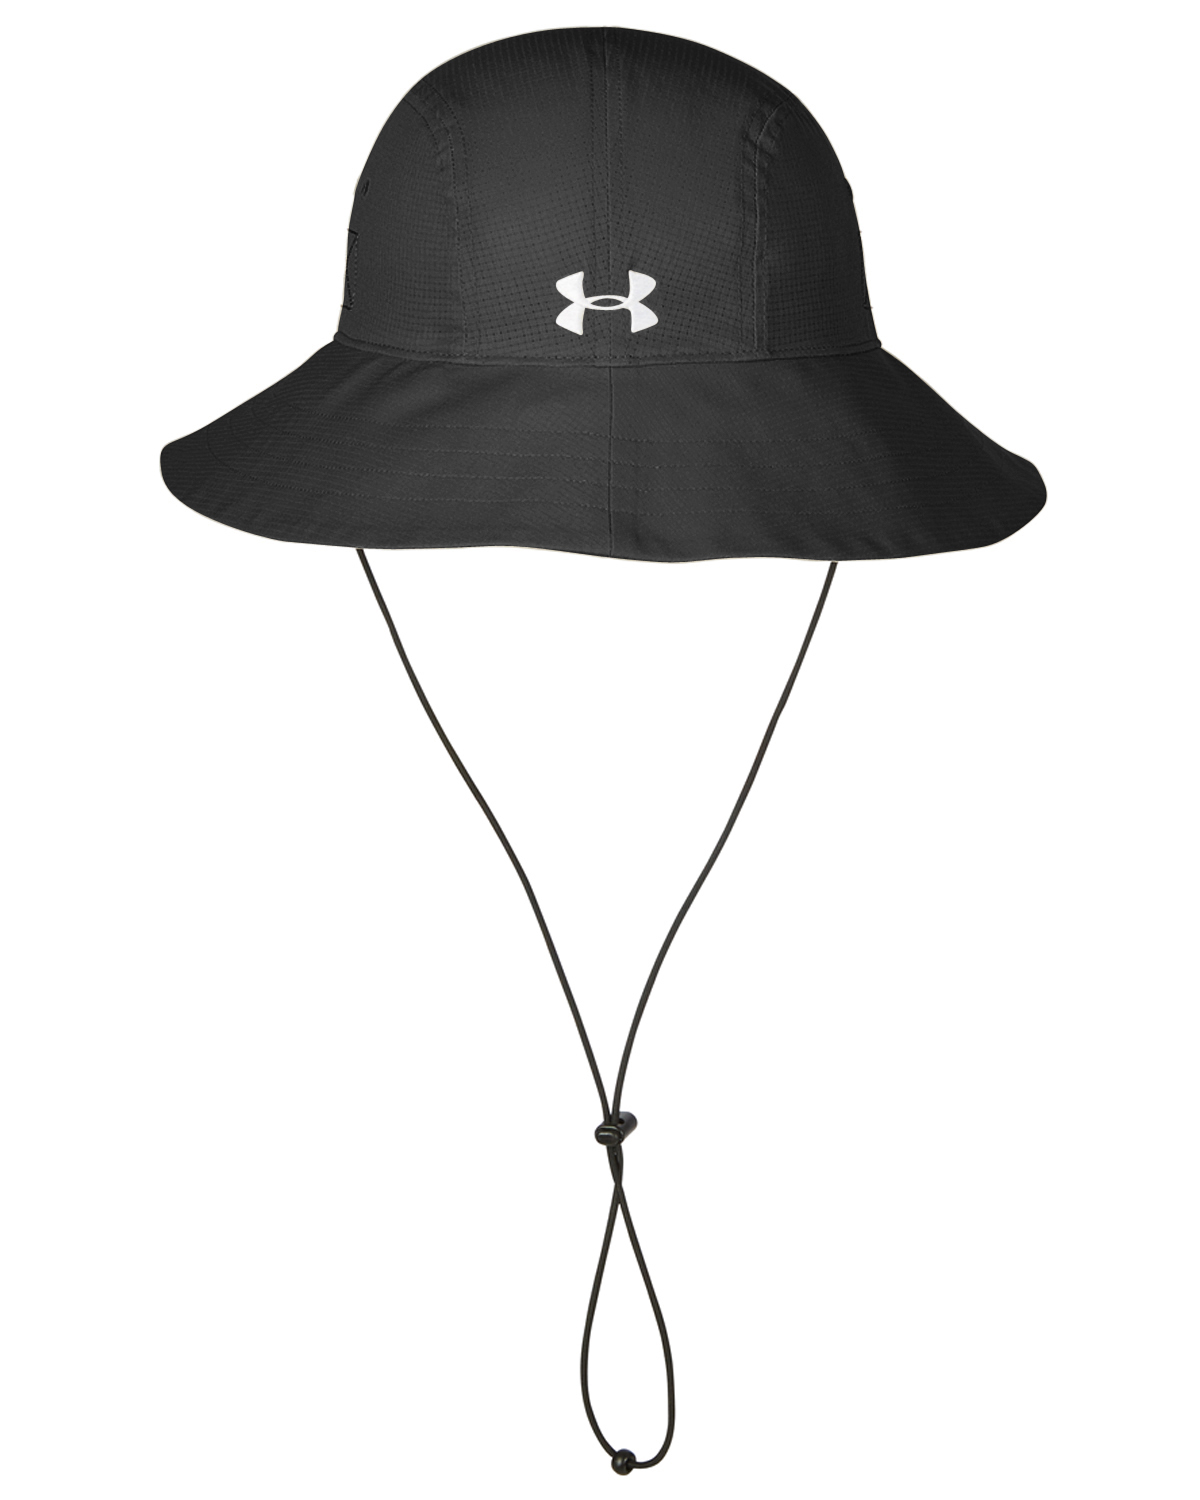 Under Armour 1282218 - Warrior Solid Bucket Hat